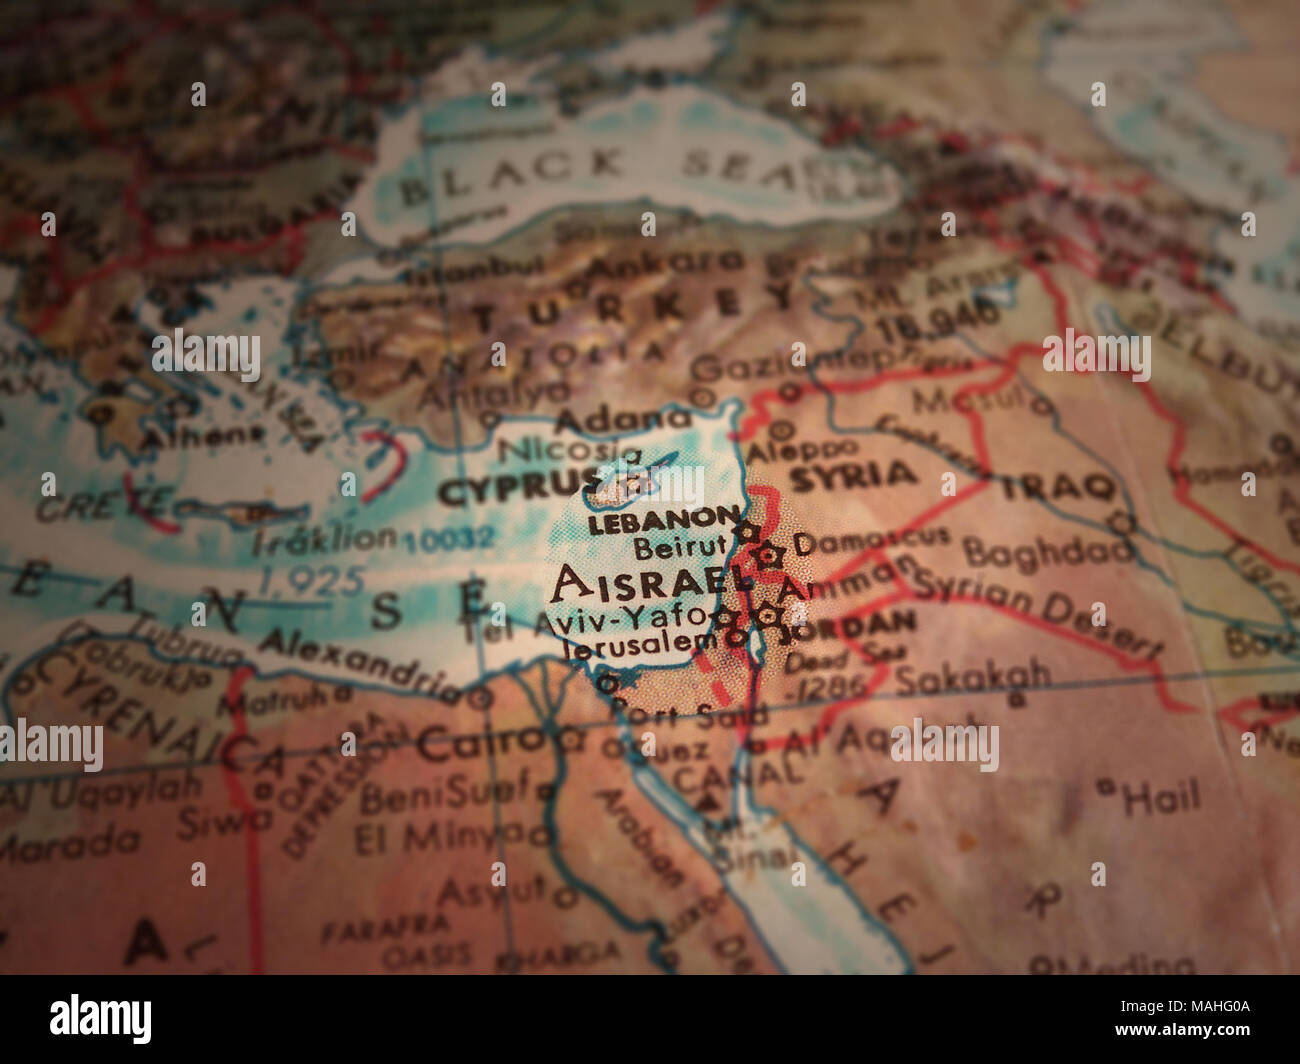 Middle east map israel in focus stock photo 178635978 alamy middle east map israel in focus gumiabroncs Image collections